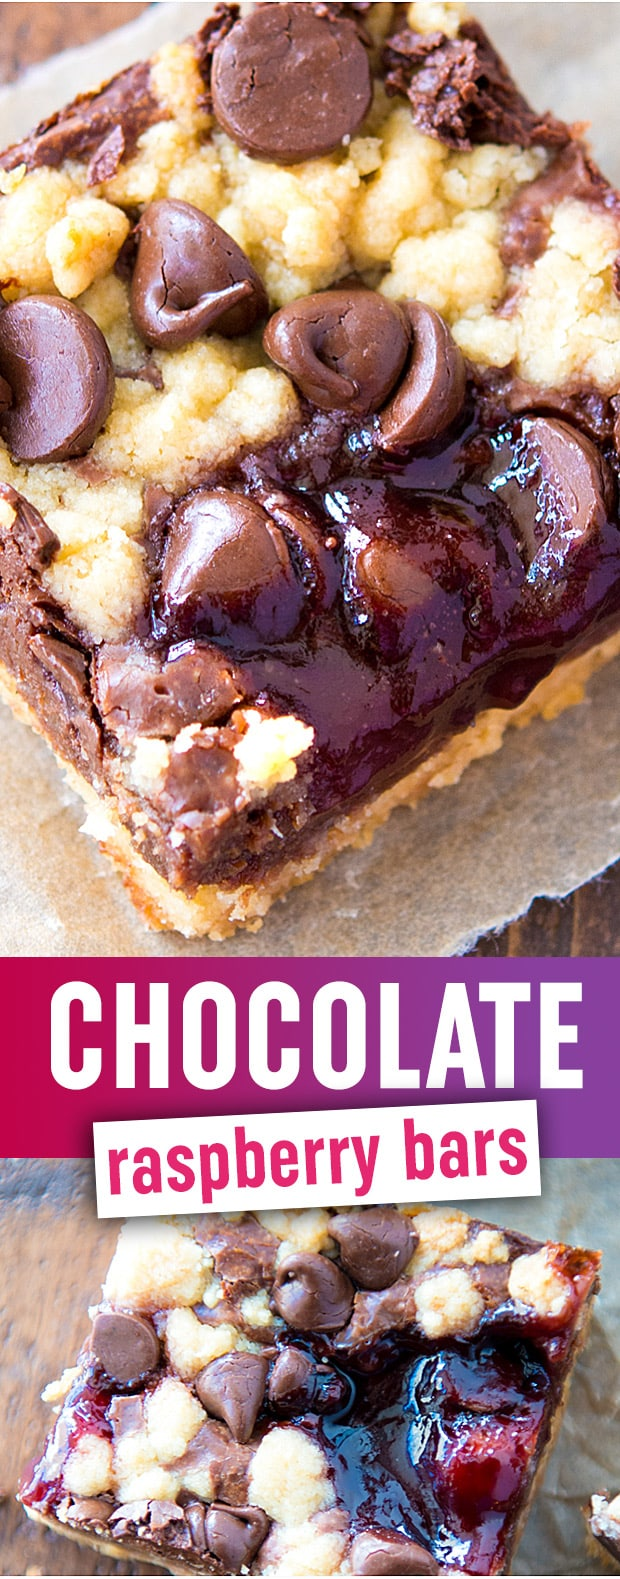 Chocolate Raspberry Bars - These chewy, goooey dessert bars are like chocolate heaven with a raspberry jam twist. SO GOOD.